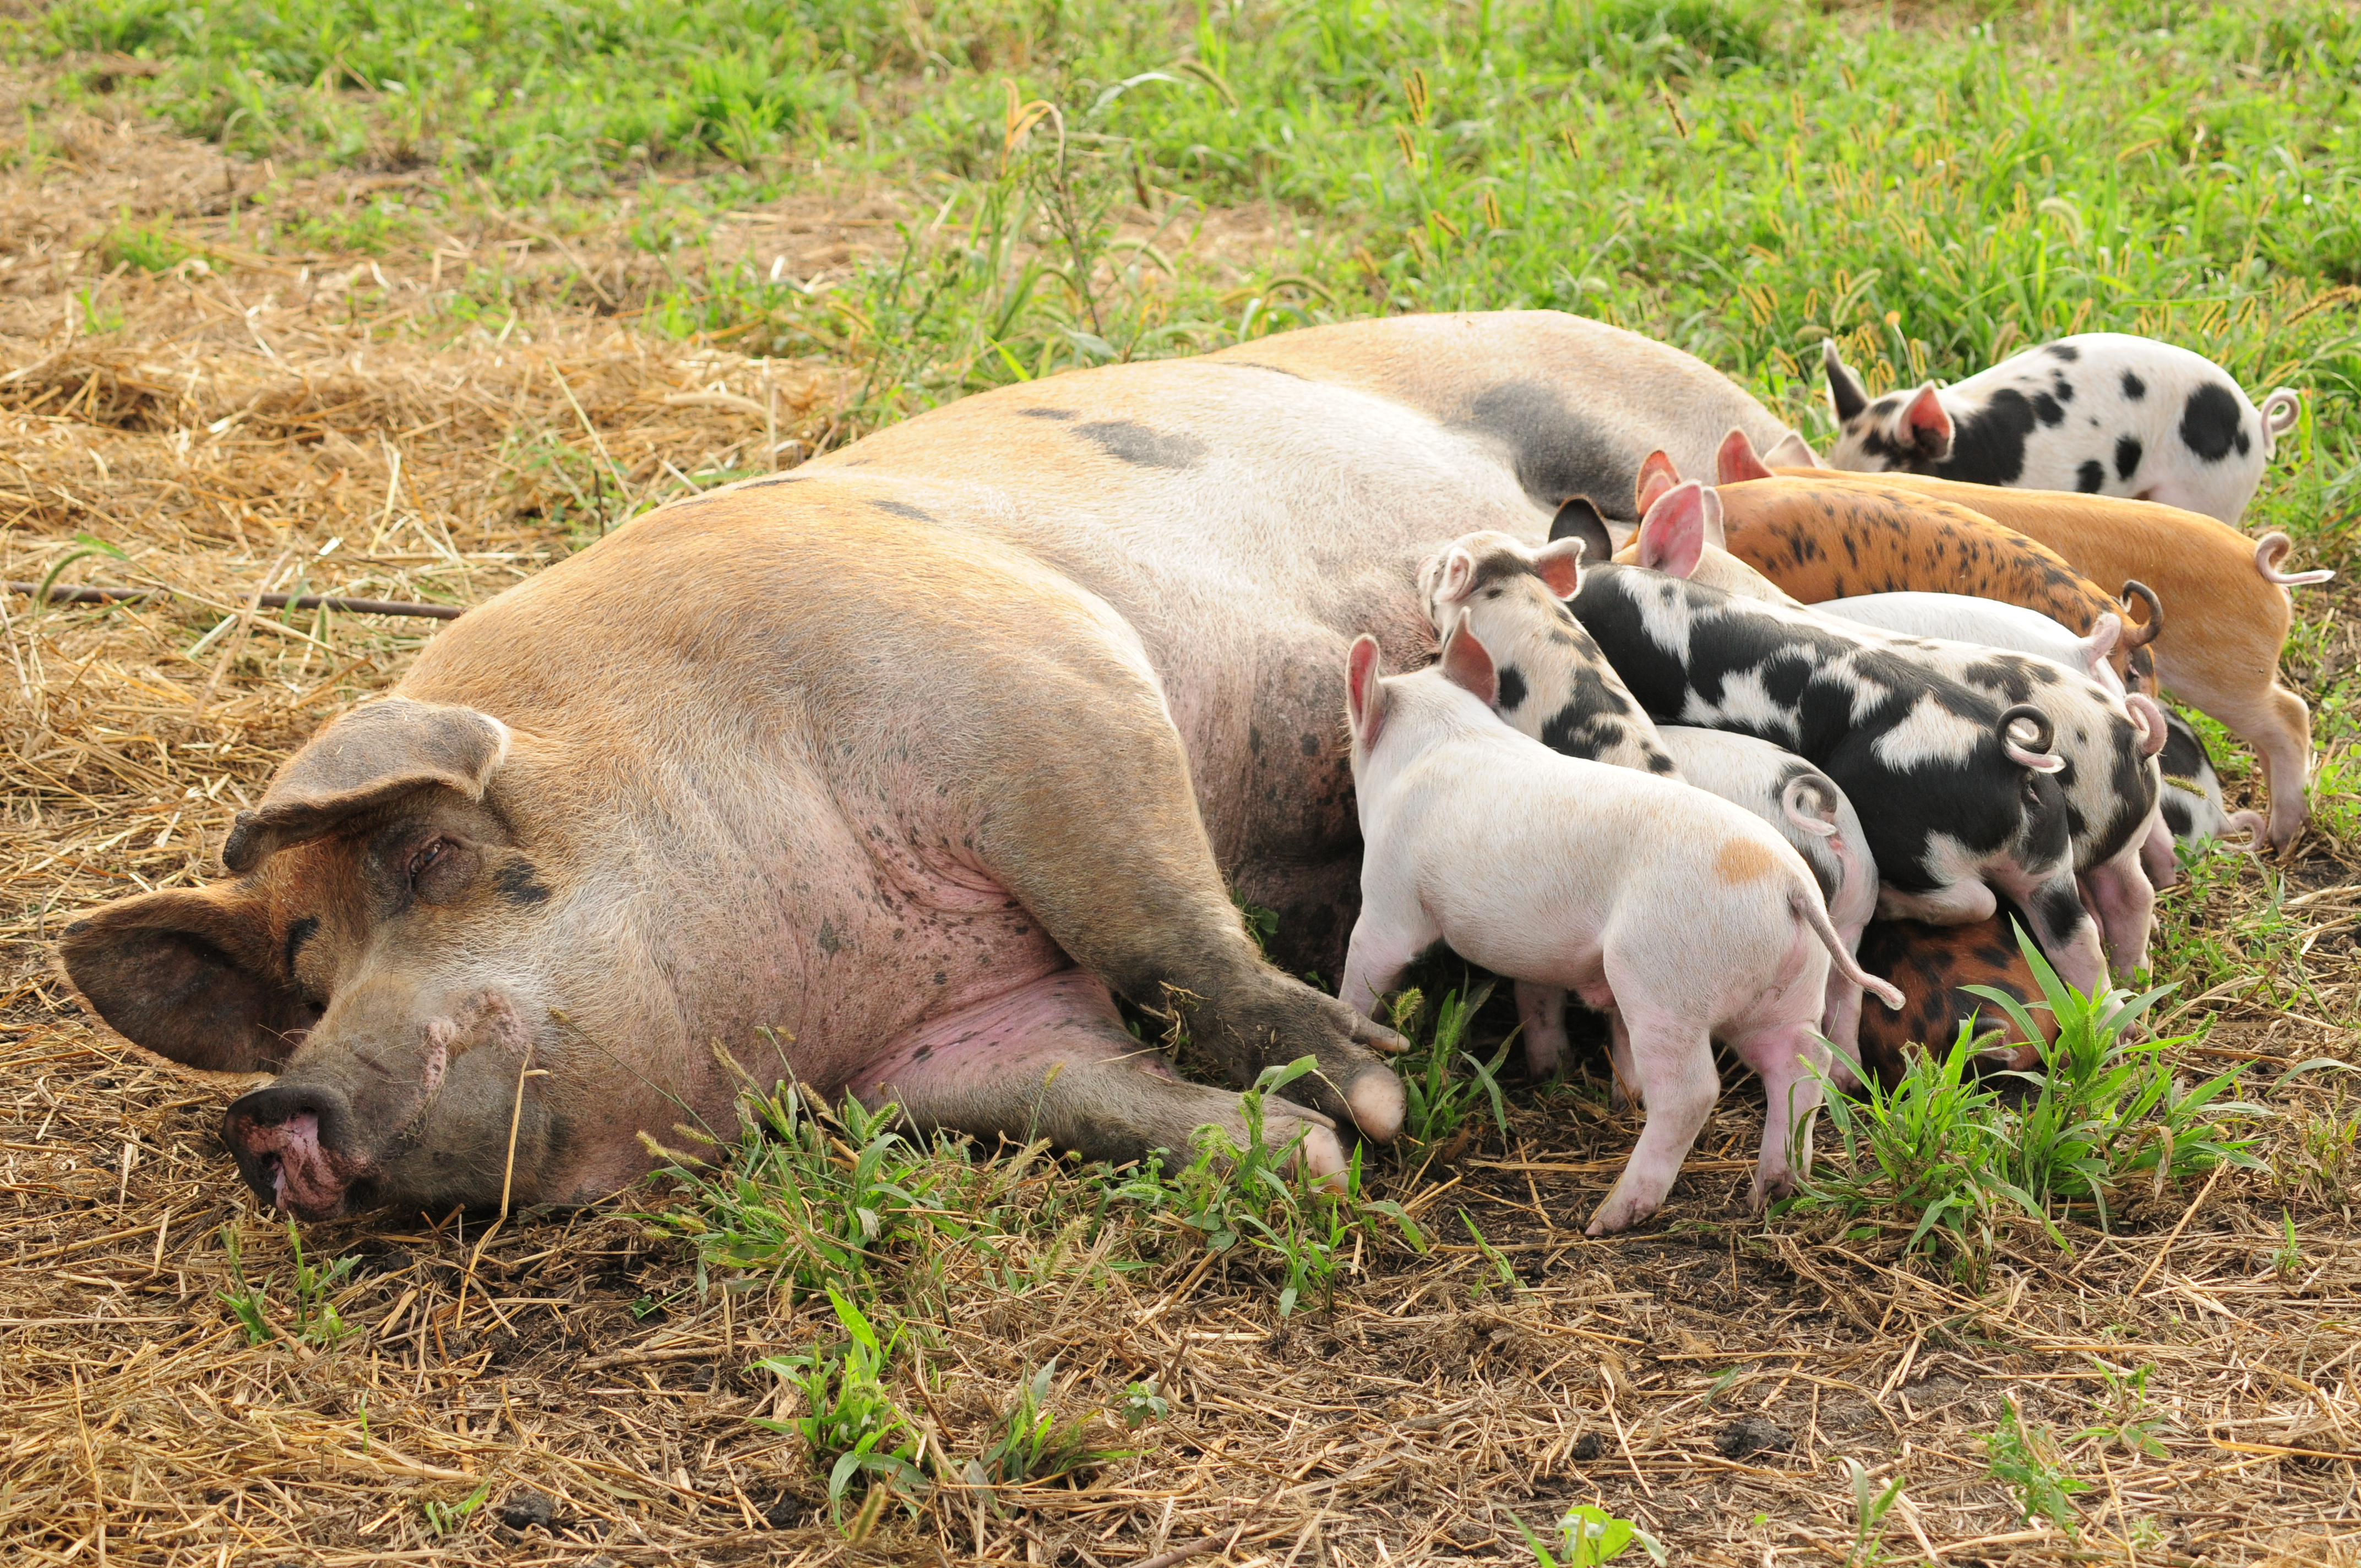 Blue apron niman ranch - Sow And Pigs Niman Ranch